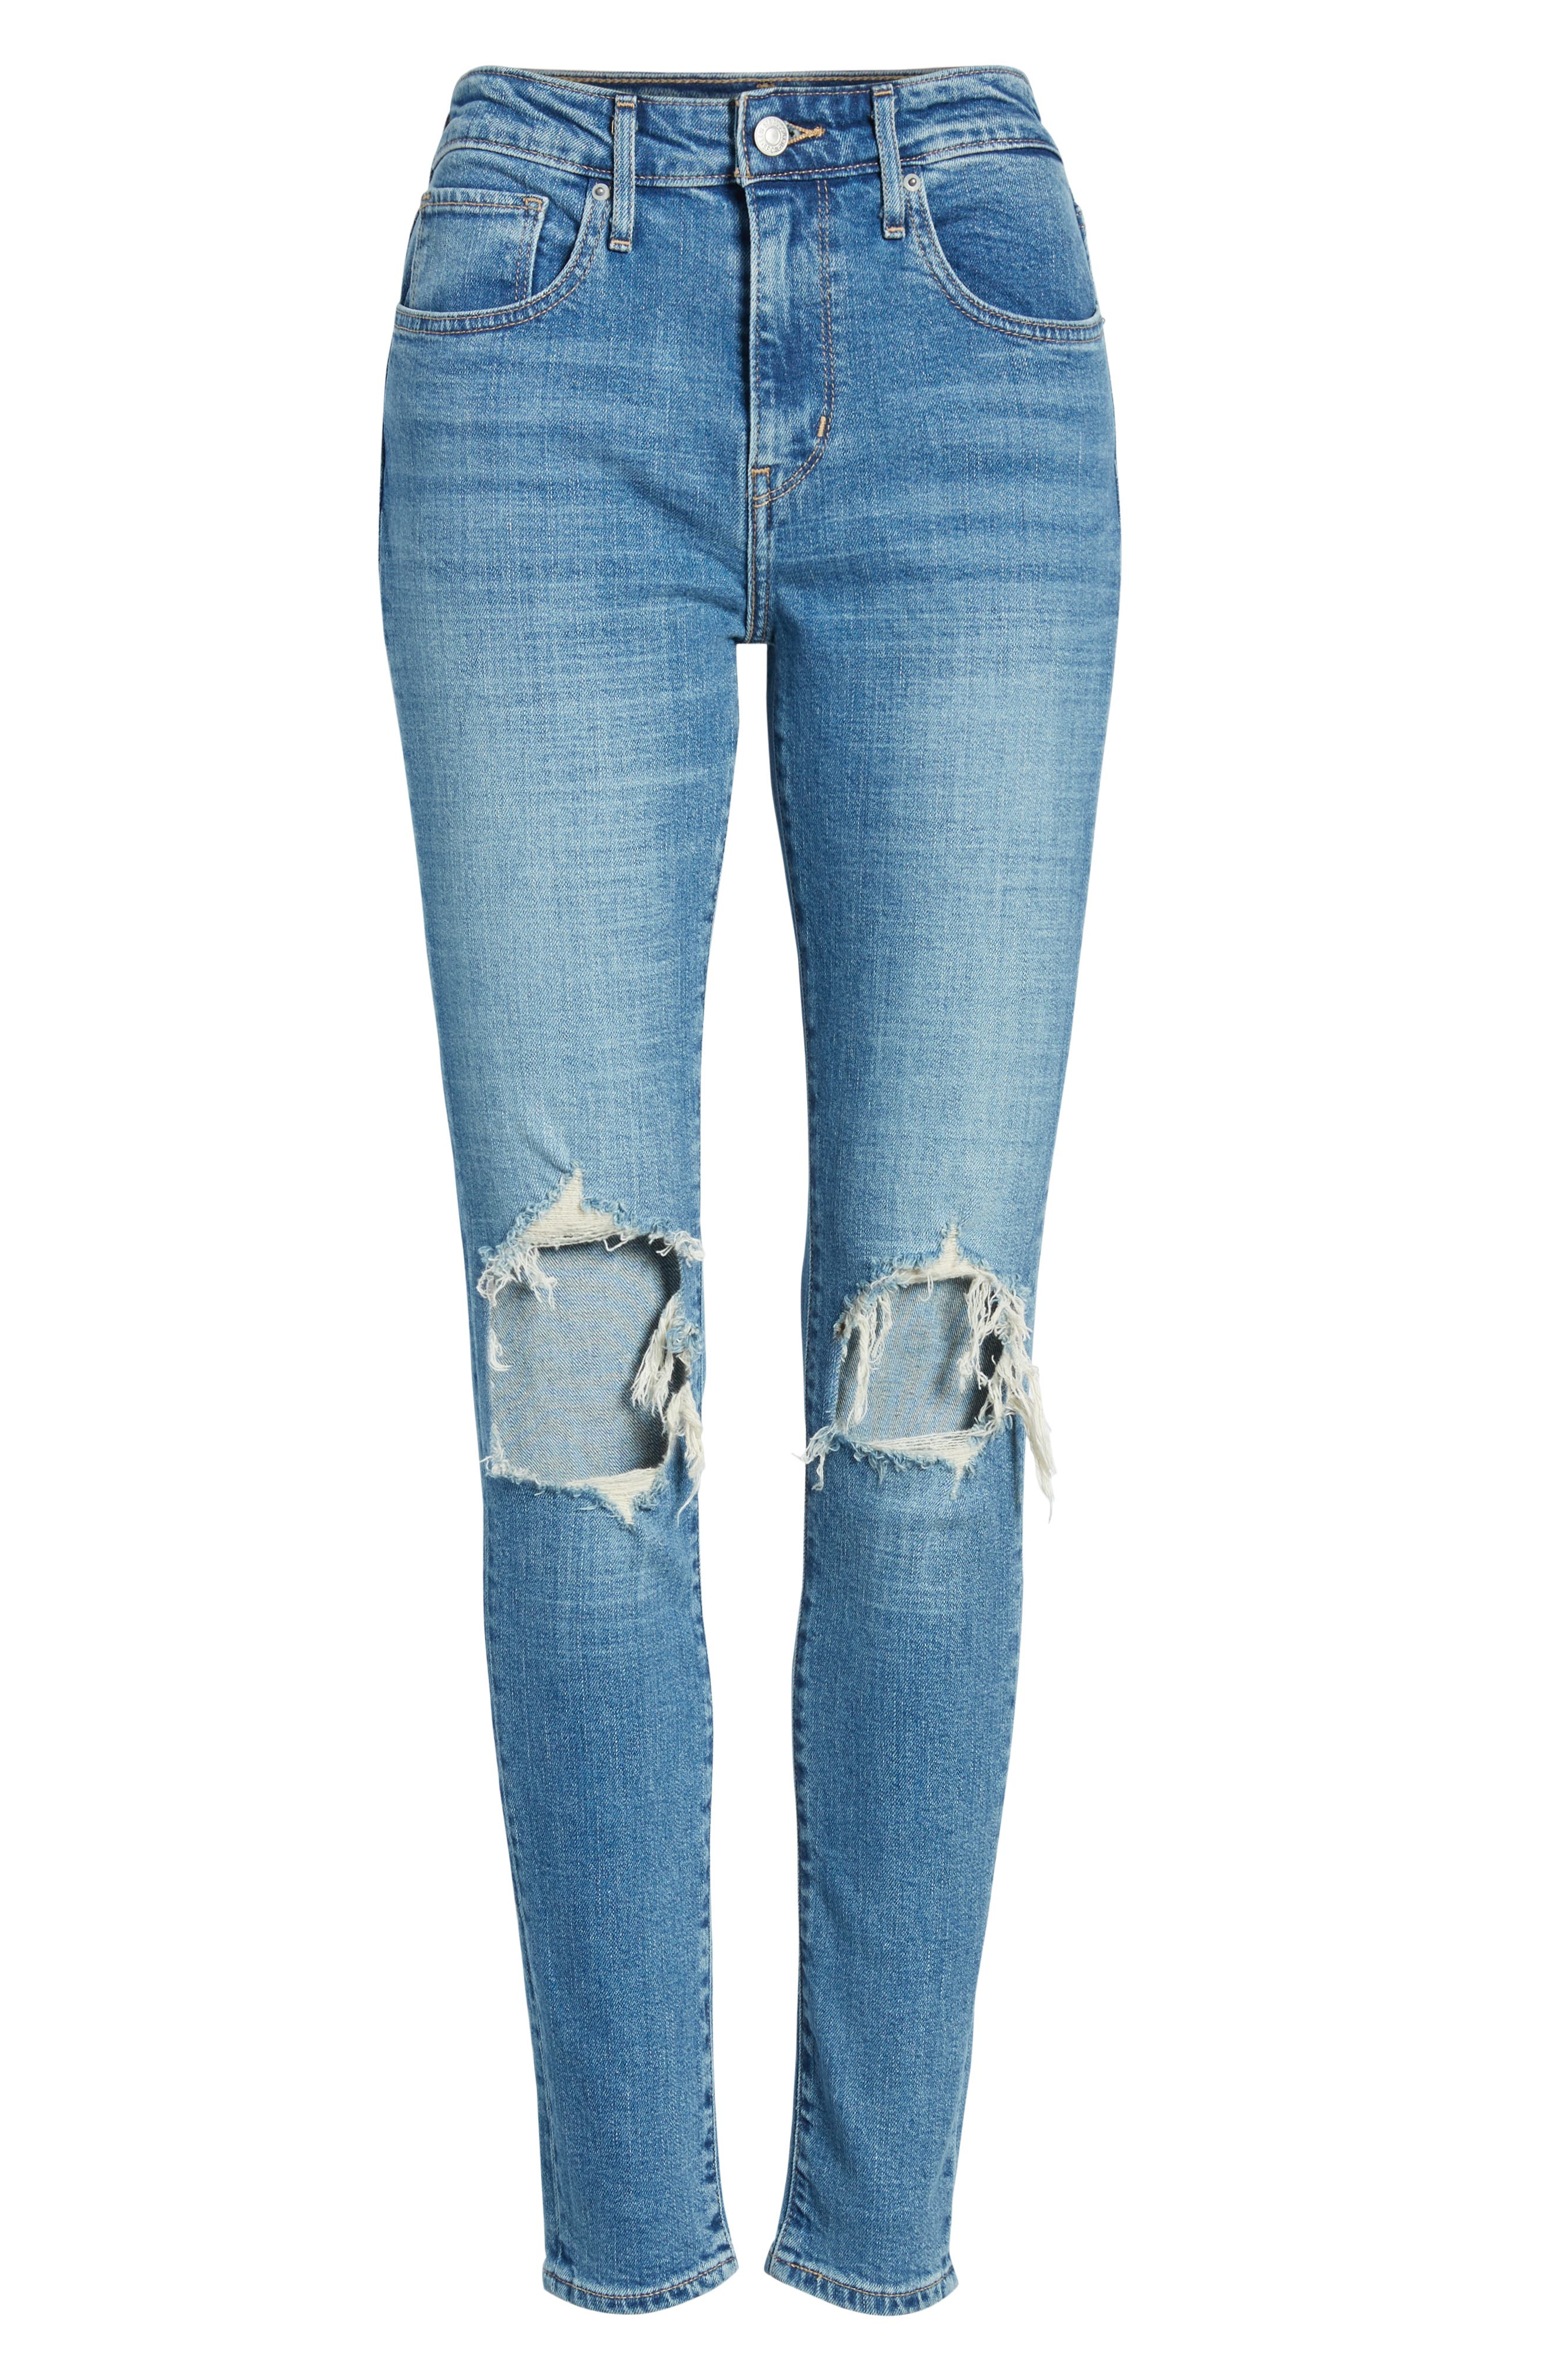 LEVI'S<SUP>®</SUP>,                             721 Ripped High Waist Skinny Jeans,                             Alternate thumbnail 3, color,                             RUGGED INDIGO